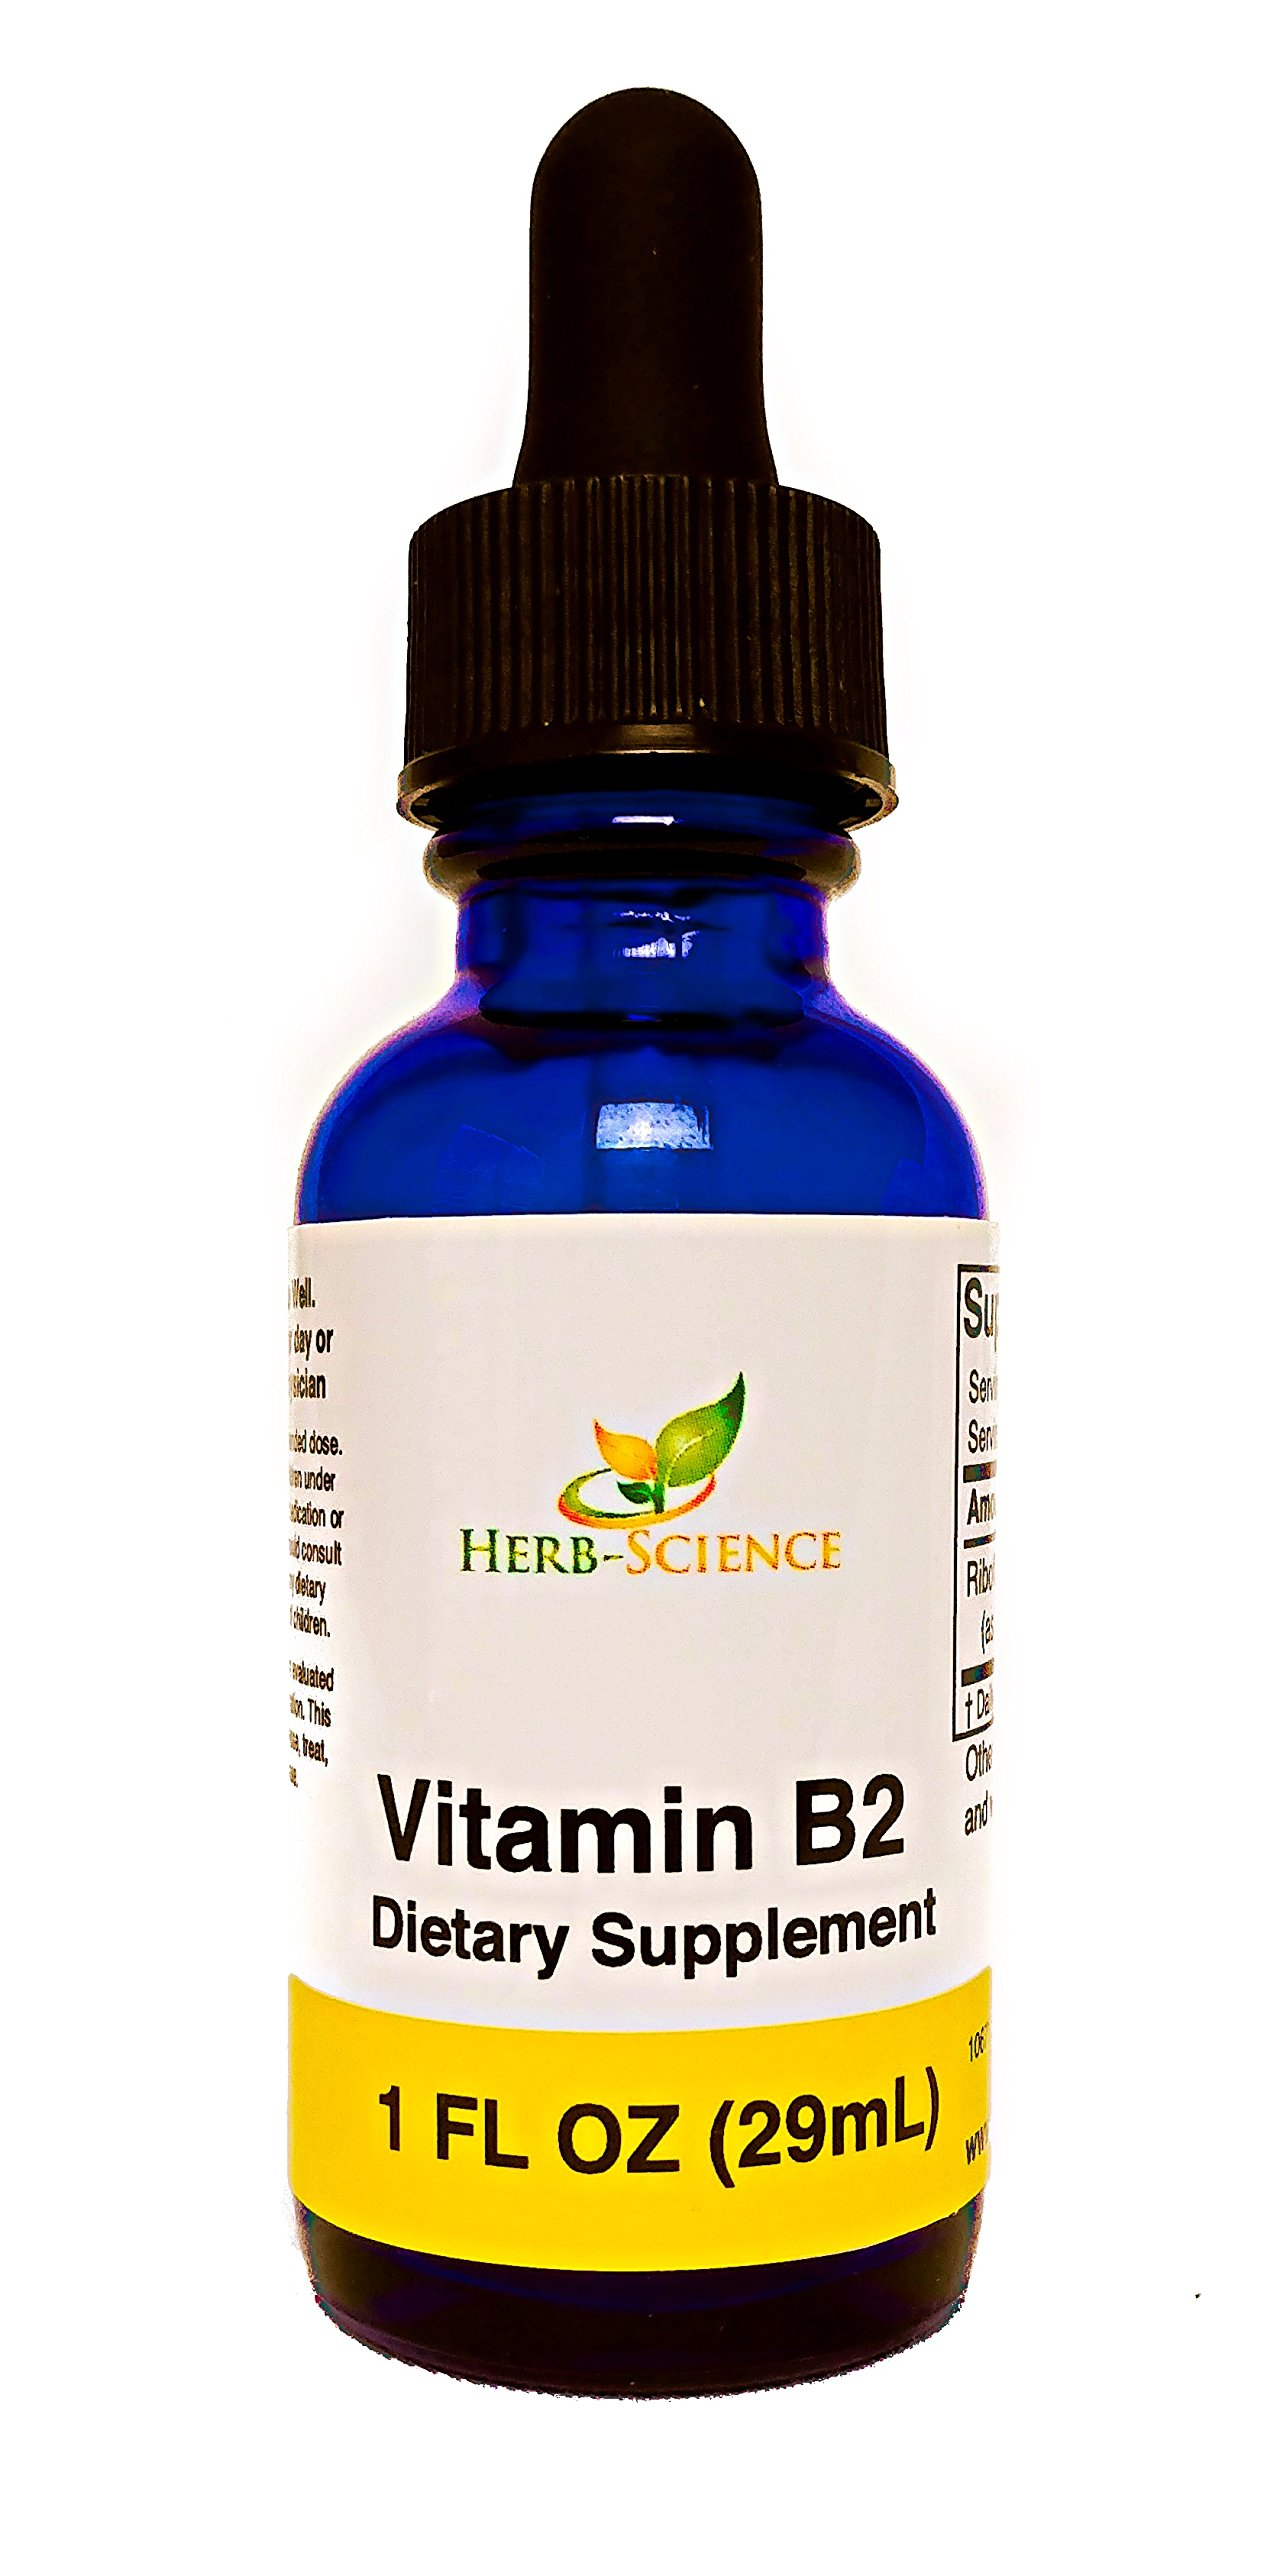 Liquid Vitamin B2 Riboflavin Drops, Alcohol-Free Liquid Extract Support Digestion, Maintain Proper Energy Levels, Boost Collagen Production for Healthy Hair, Nails, Skin, Herb-Science (1 oz)